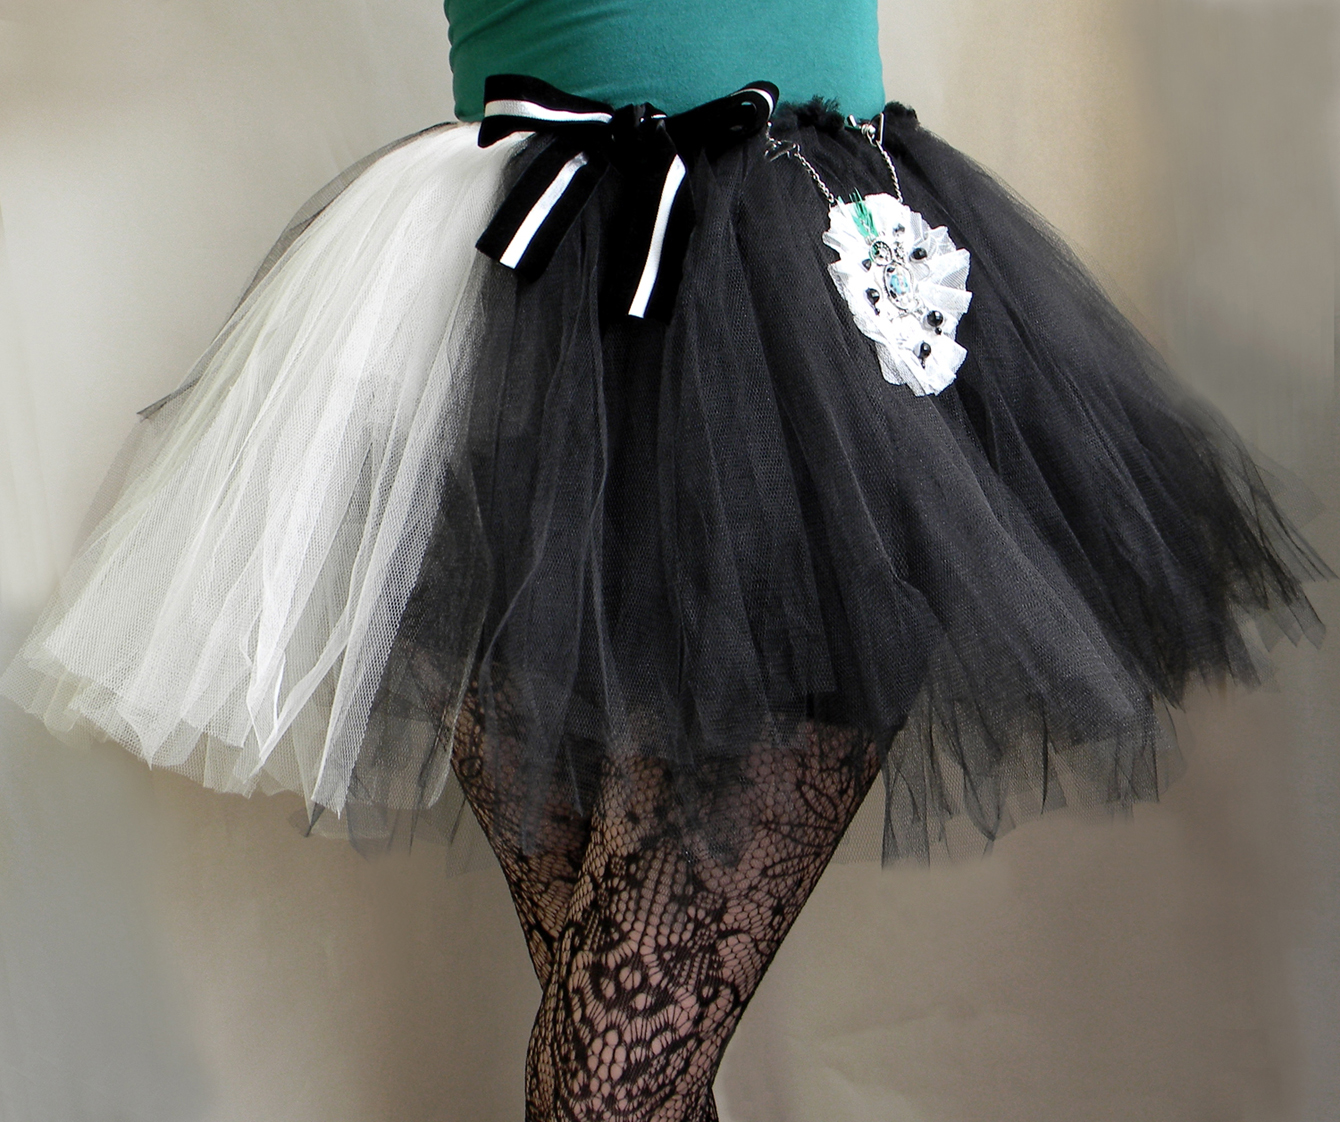 Unique Original Fashion Clothing Skirt Handmade Handcrafted Tutu Ballerina Skirt